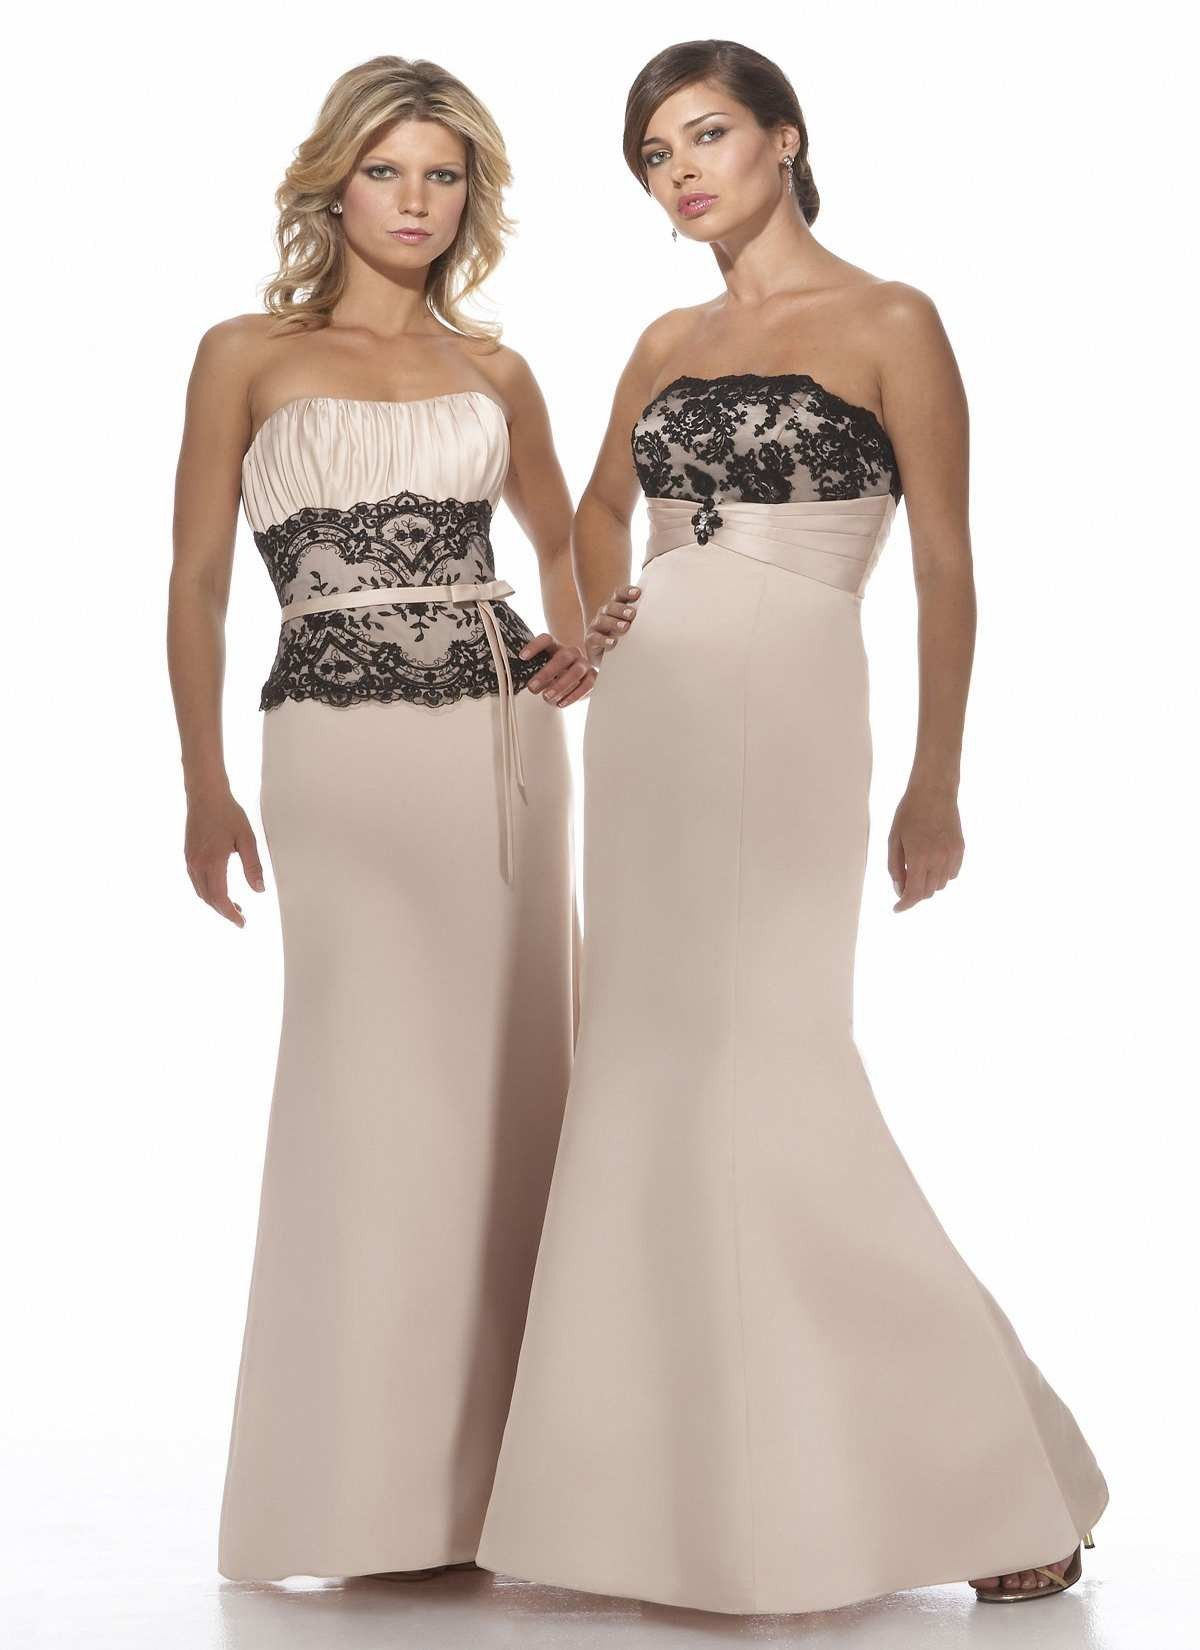 Bridesmaid lace dresses above black and champagne lace bridesmaid lace dresses above black and champagne lace bridesmaid dresses the property ombrellifo Gallery